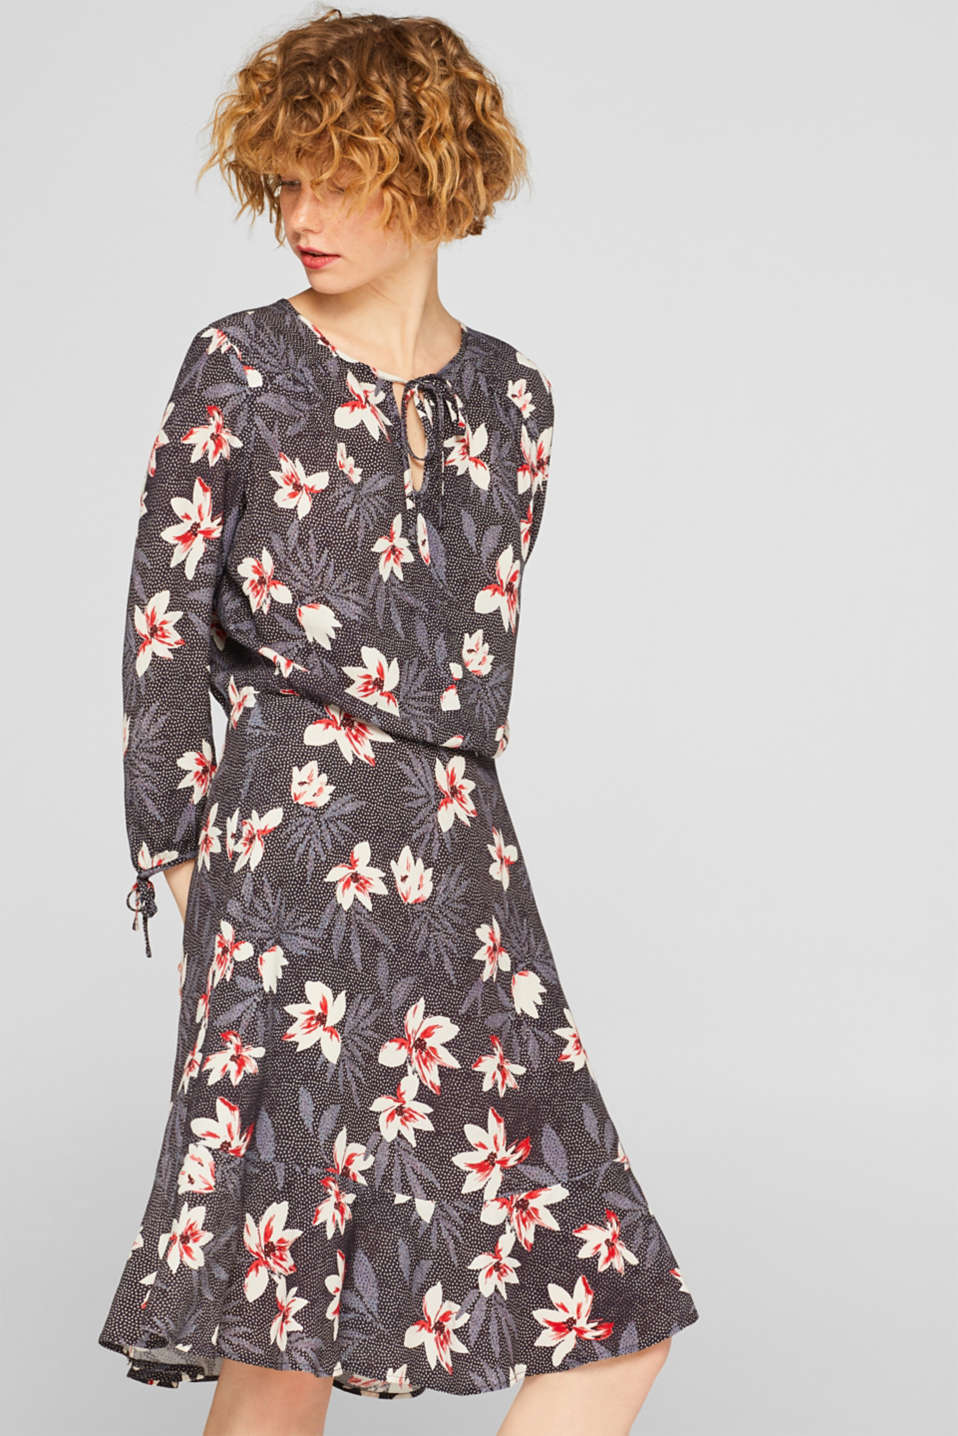 Esprit - Printed dress with bow sleeves